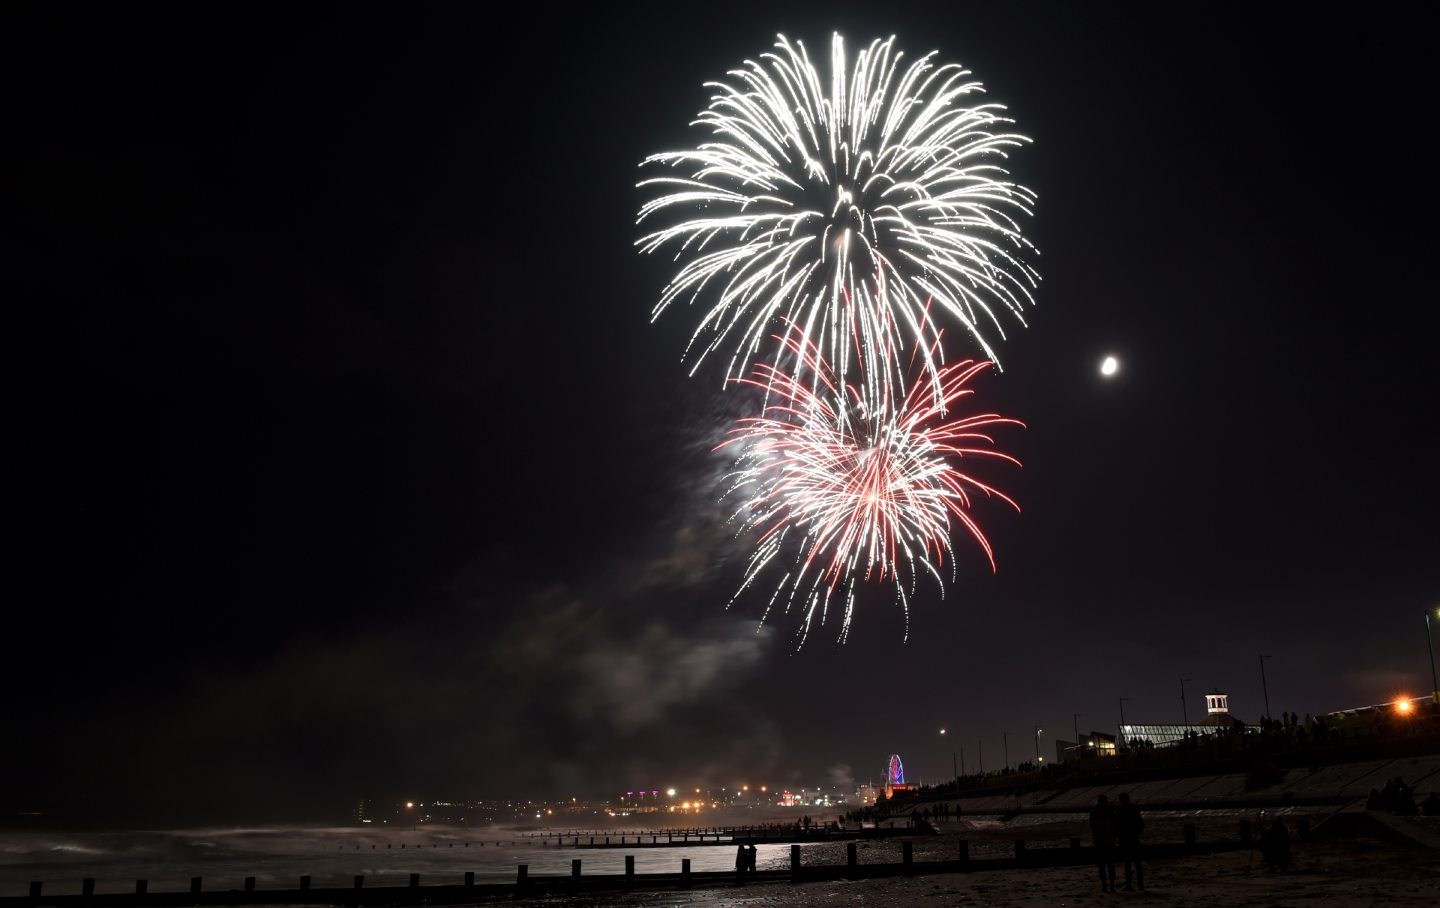 This year's fireworks display has been cancelled